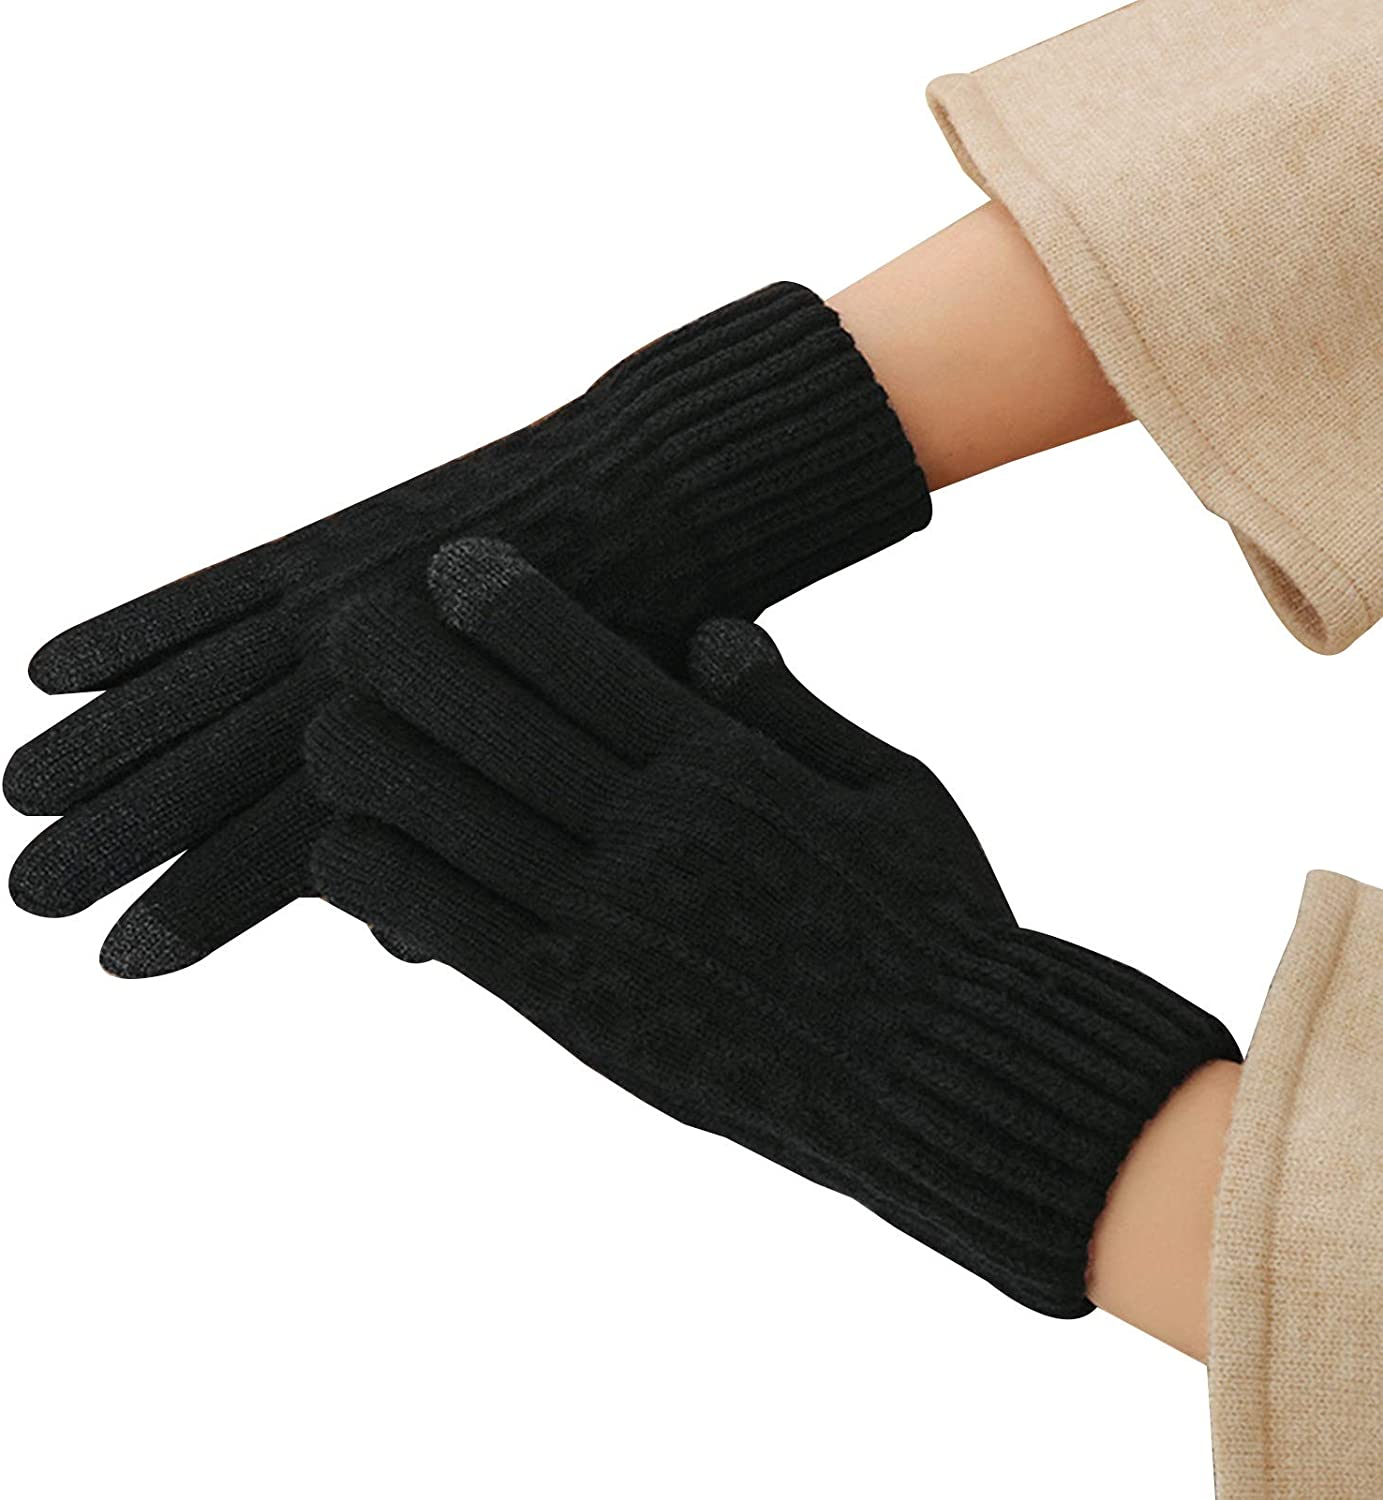 FOLDING Gloves Ladies Winter Knitted Touch Screen Gloves to Keep Warm, Soft Lining, Elastic Cuffs (Color : Black)